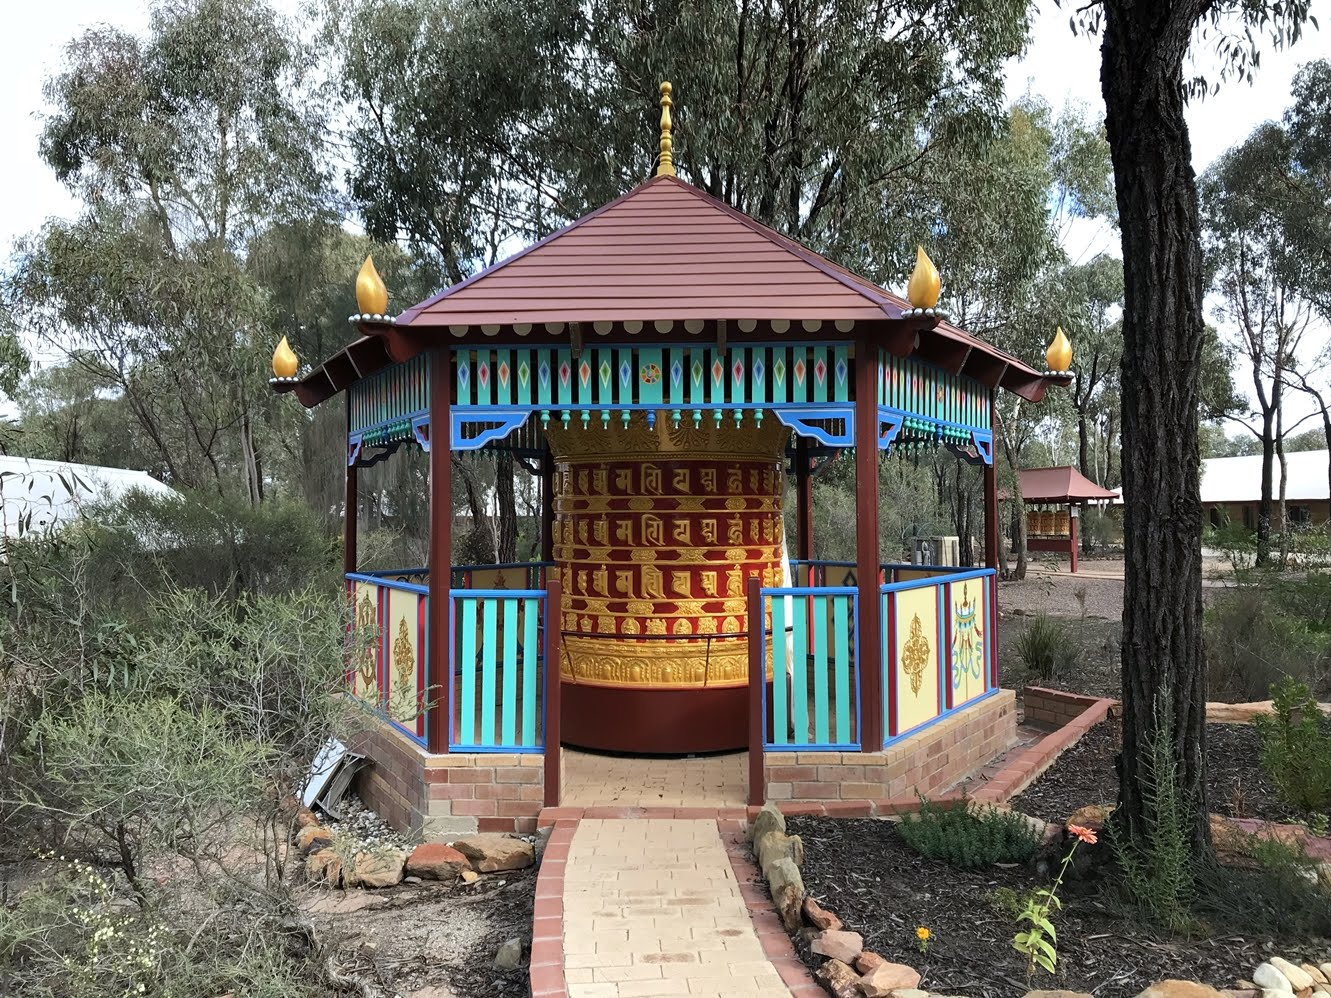 Thubten Shedrup Ling Monastery, Australia. 1.8 meters tall x 1.8 meters diameter contains approximately 250,000,000 mantras including copies of the Dharmakaya Relic Mantras.